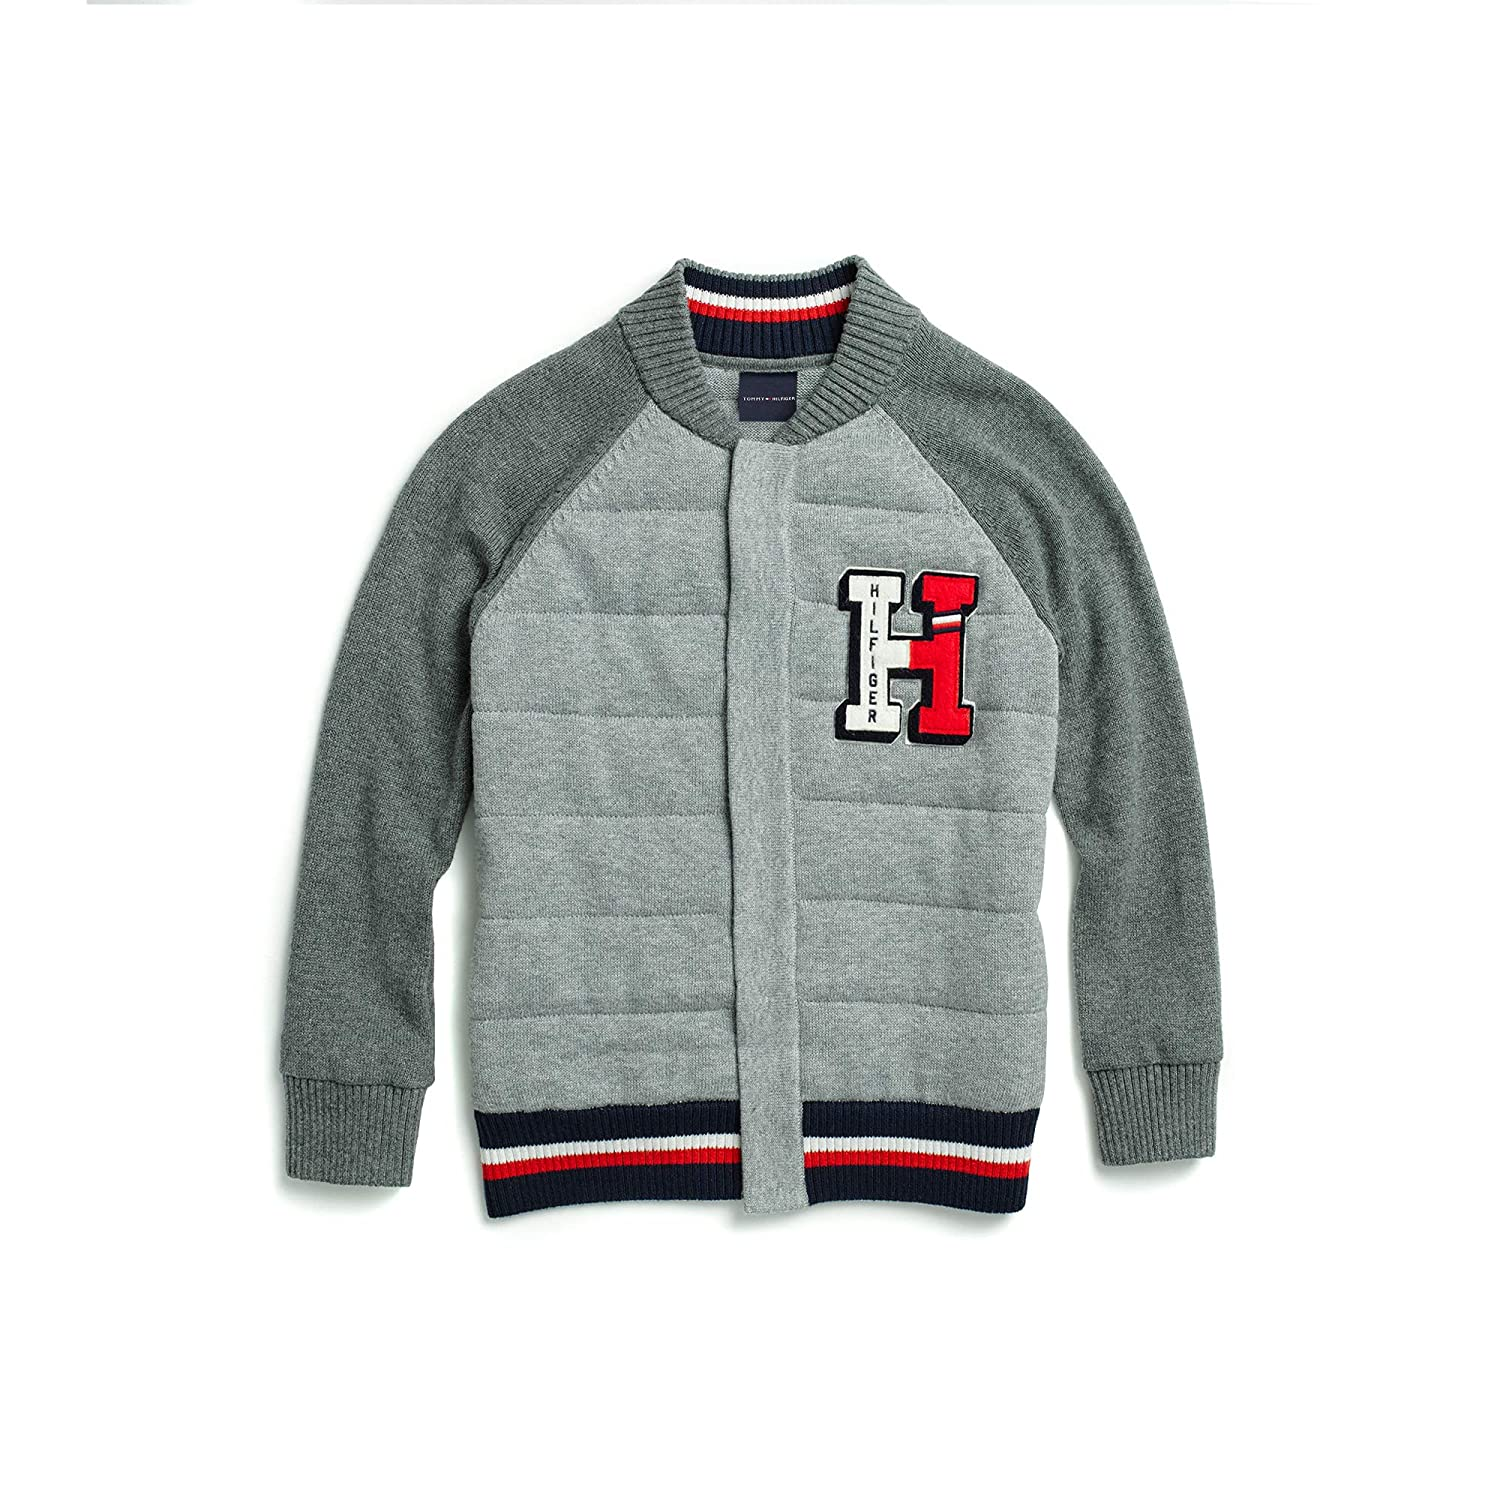 Tommy Hilfiger Boys Adaptive Baseball Sweater with Magnetic Buttons at Front